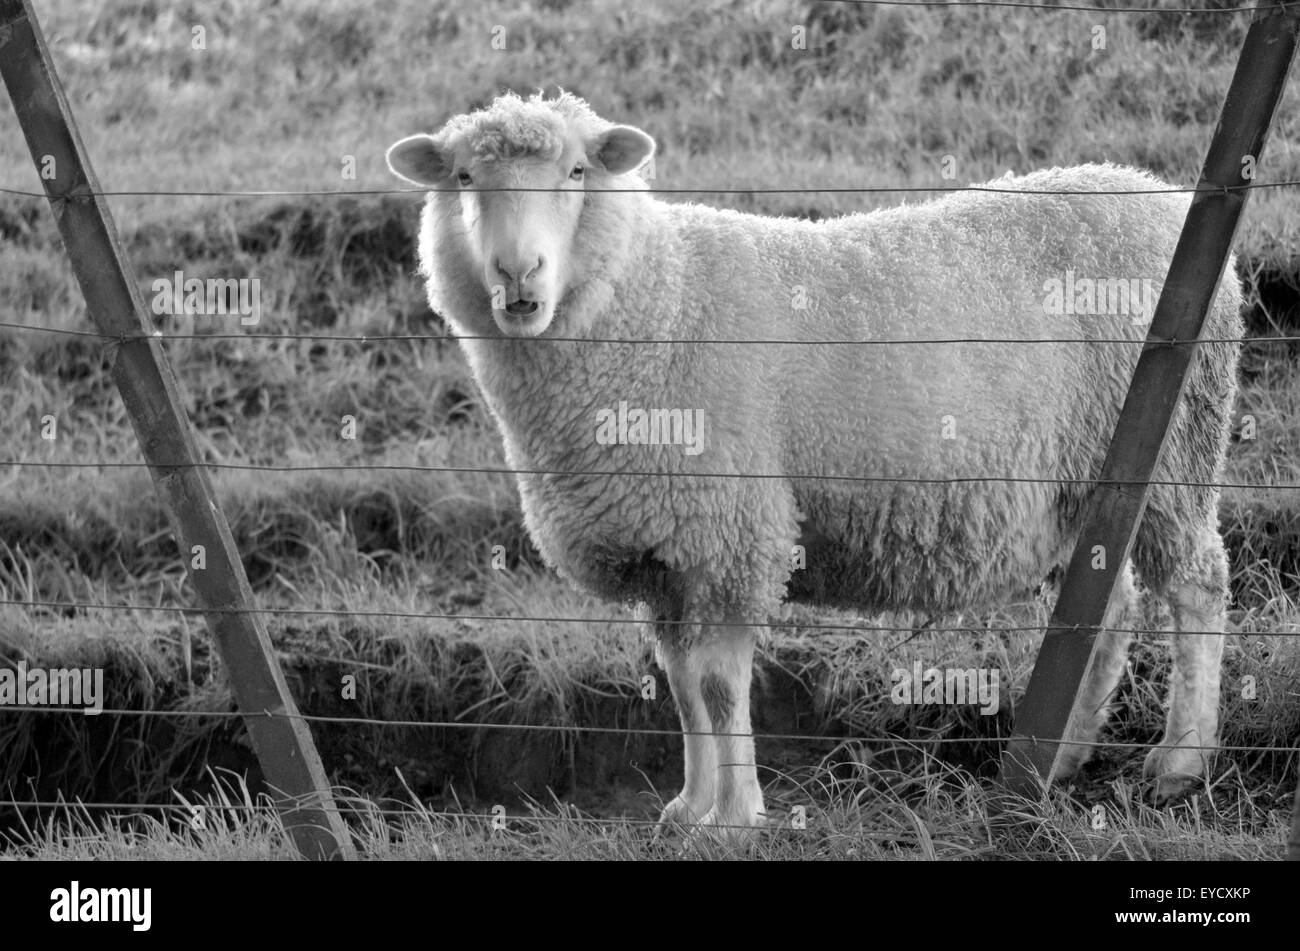 Sheep stand behind a fence of a sheep farm. Full body looks at the camera (BW) - Stock Image